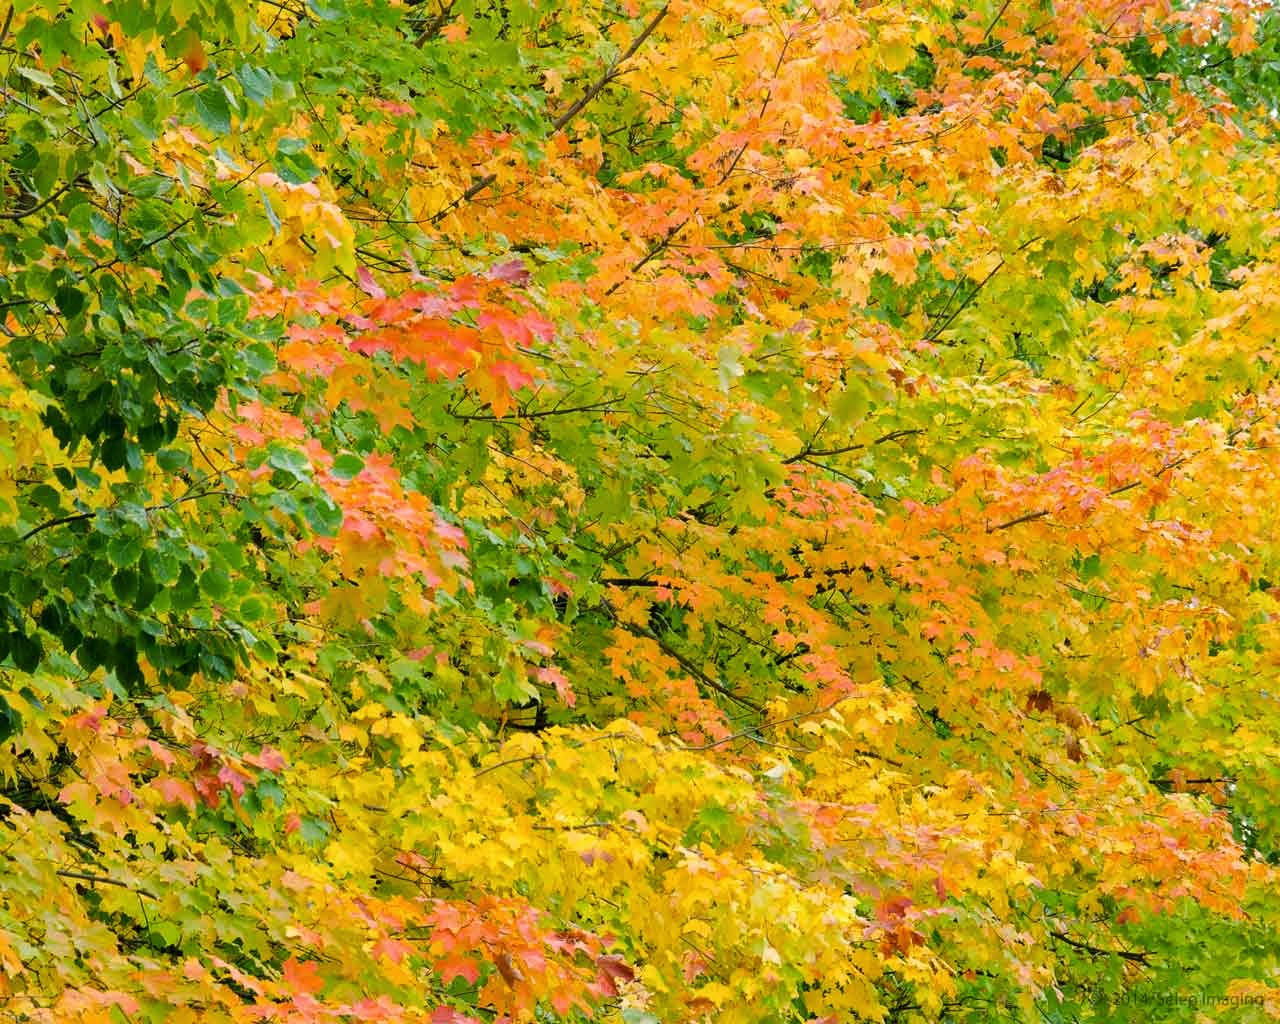 Fall foliage free desktop background by Jeanne Selep